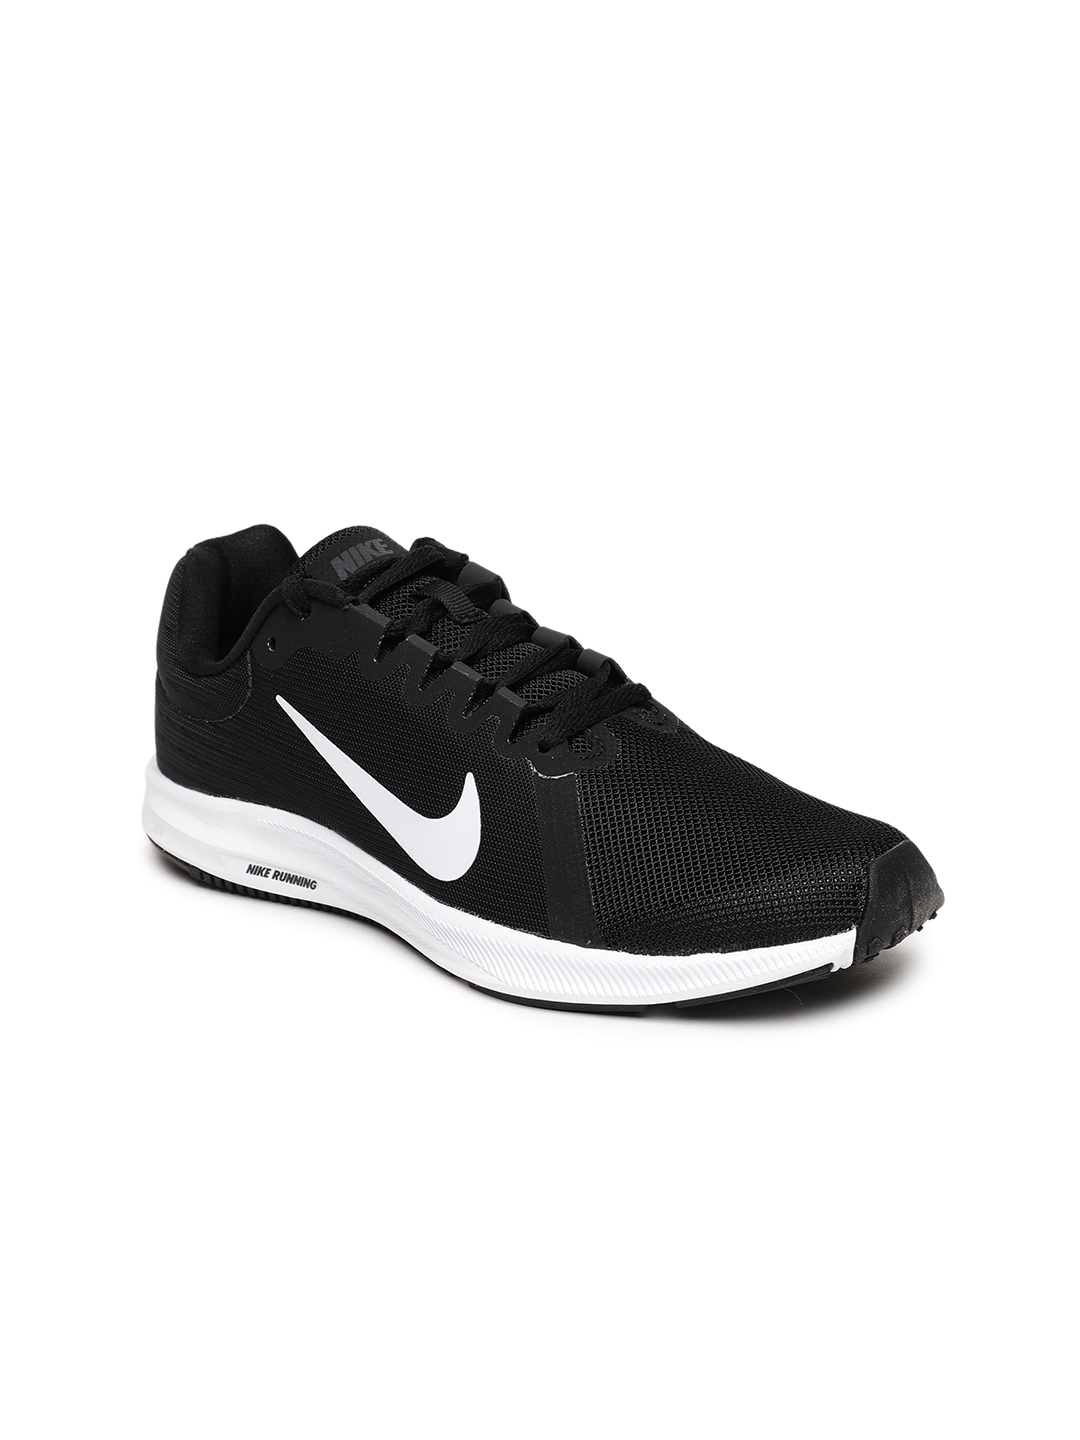 Buy Nike Women Black Downshifter 8 Running Shoes - Sports Shoes for ... 215ddf1f6f